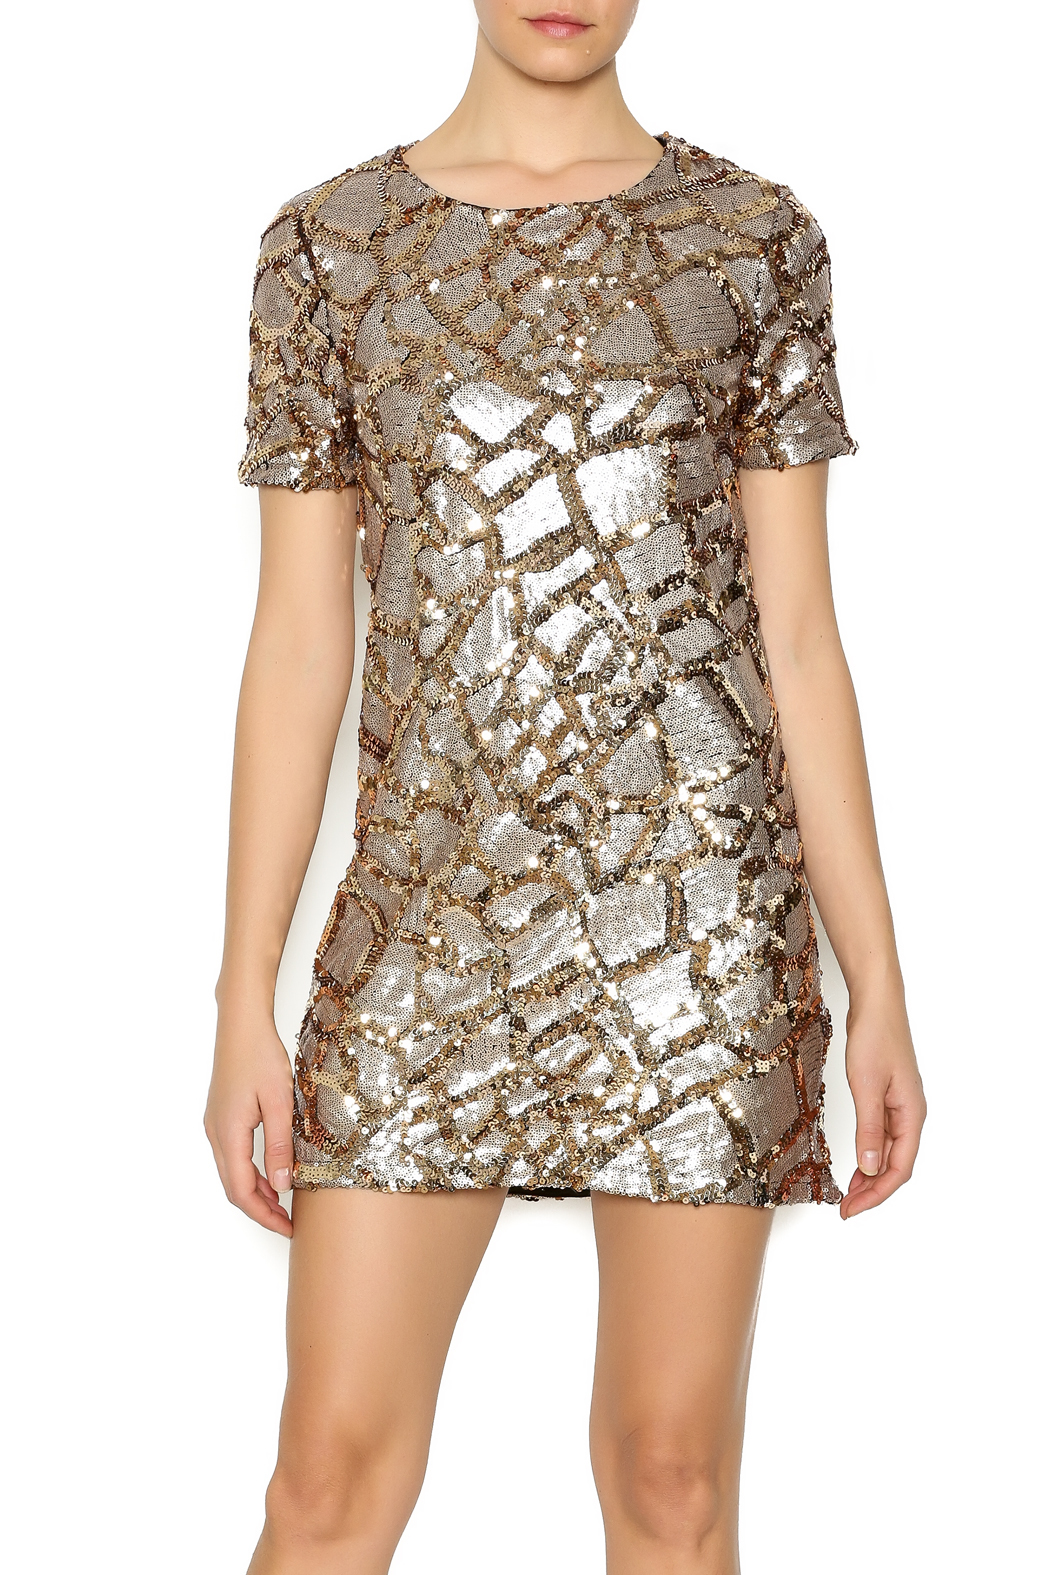 ENTRY Gold Sequin Dress - Main Image